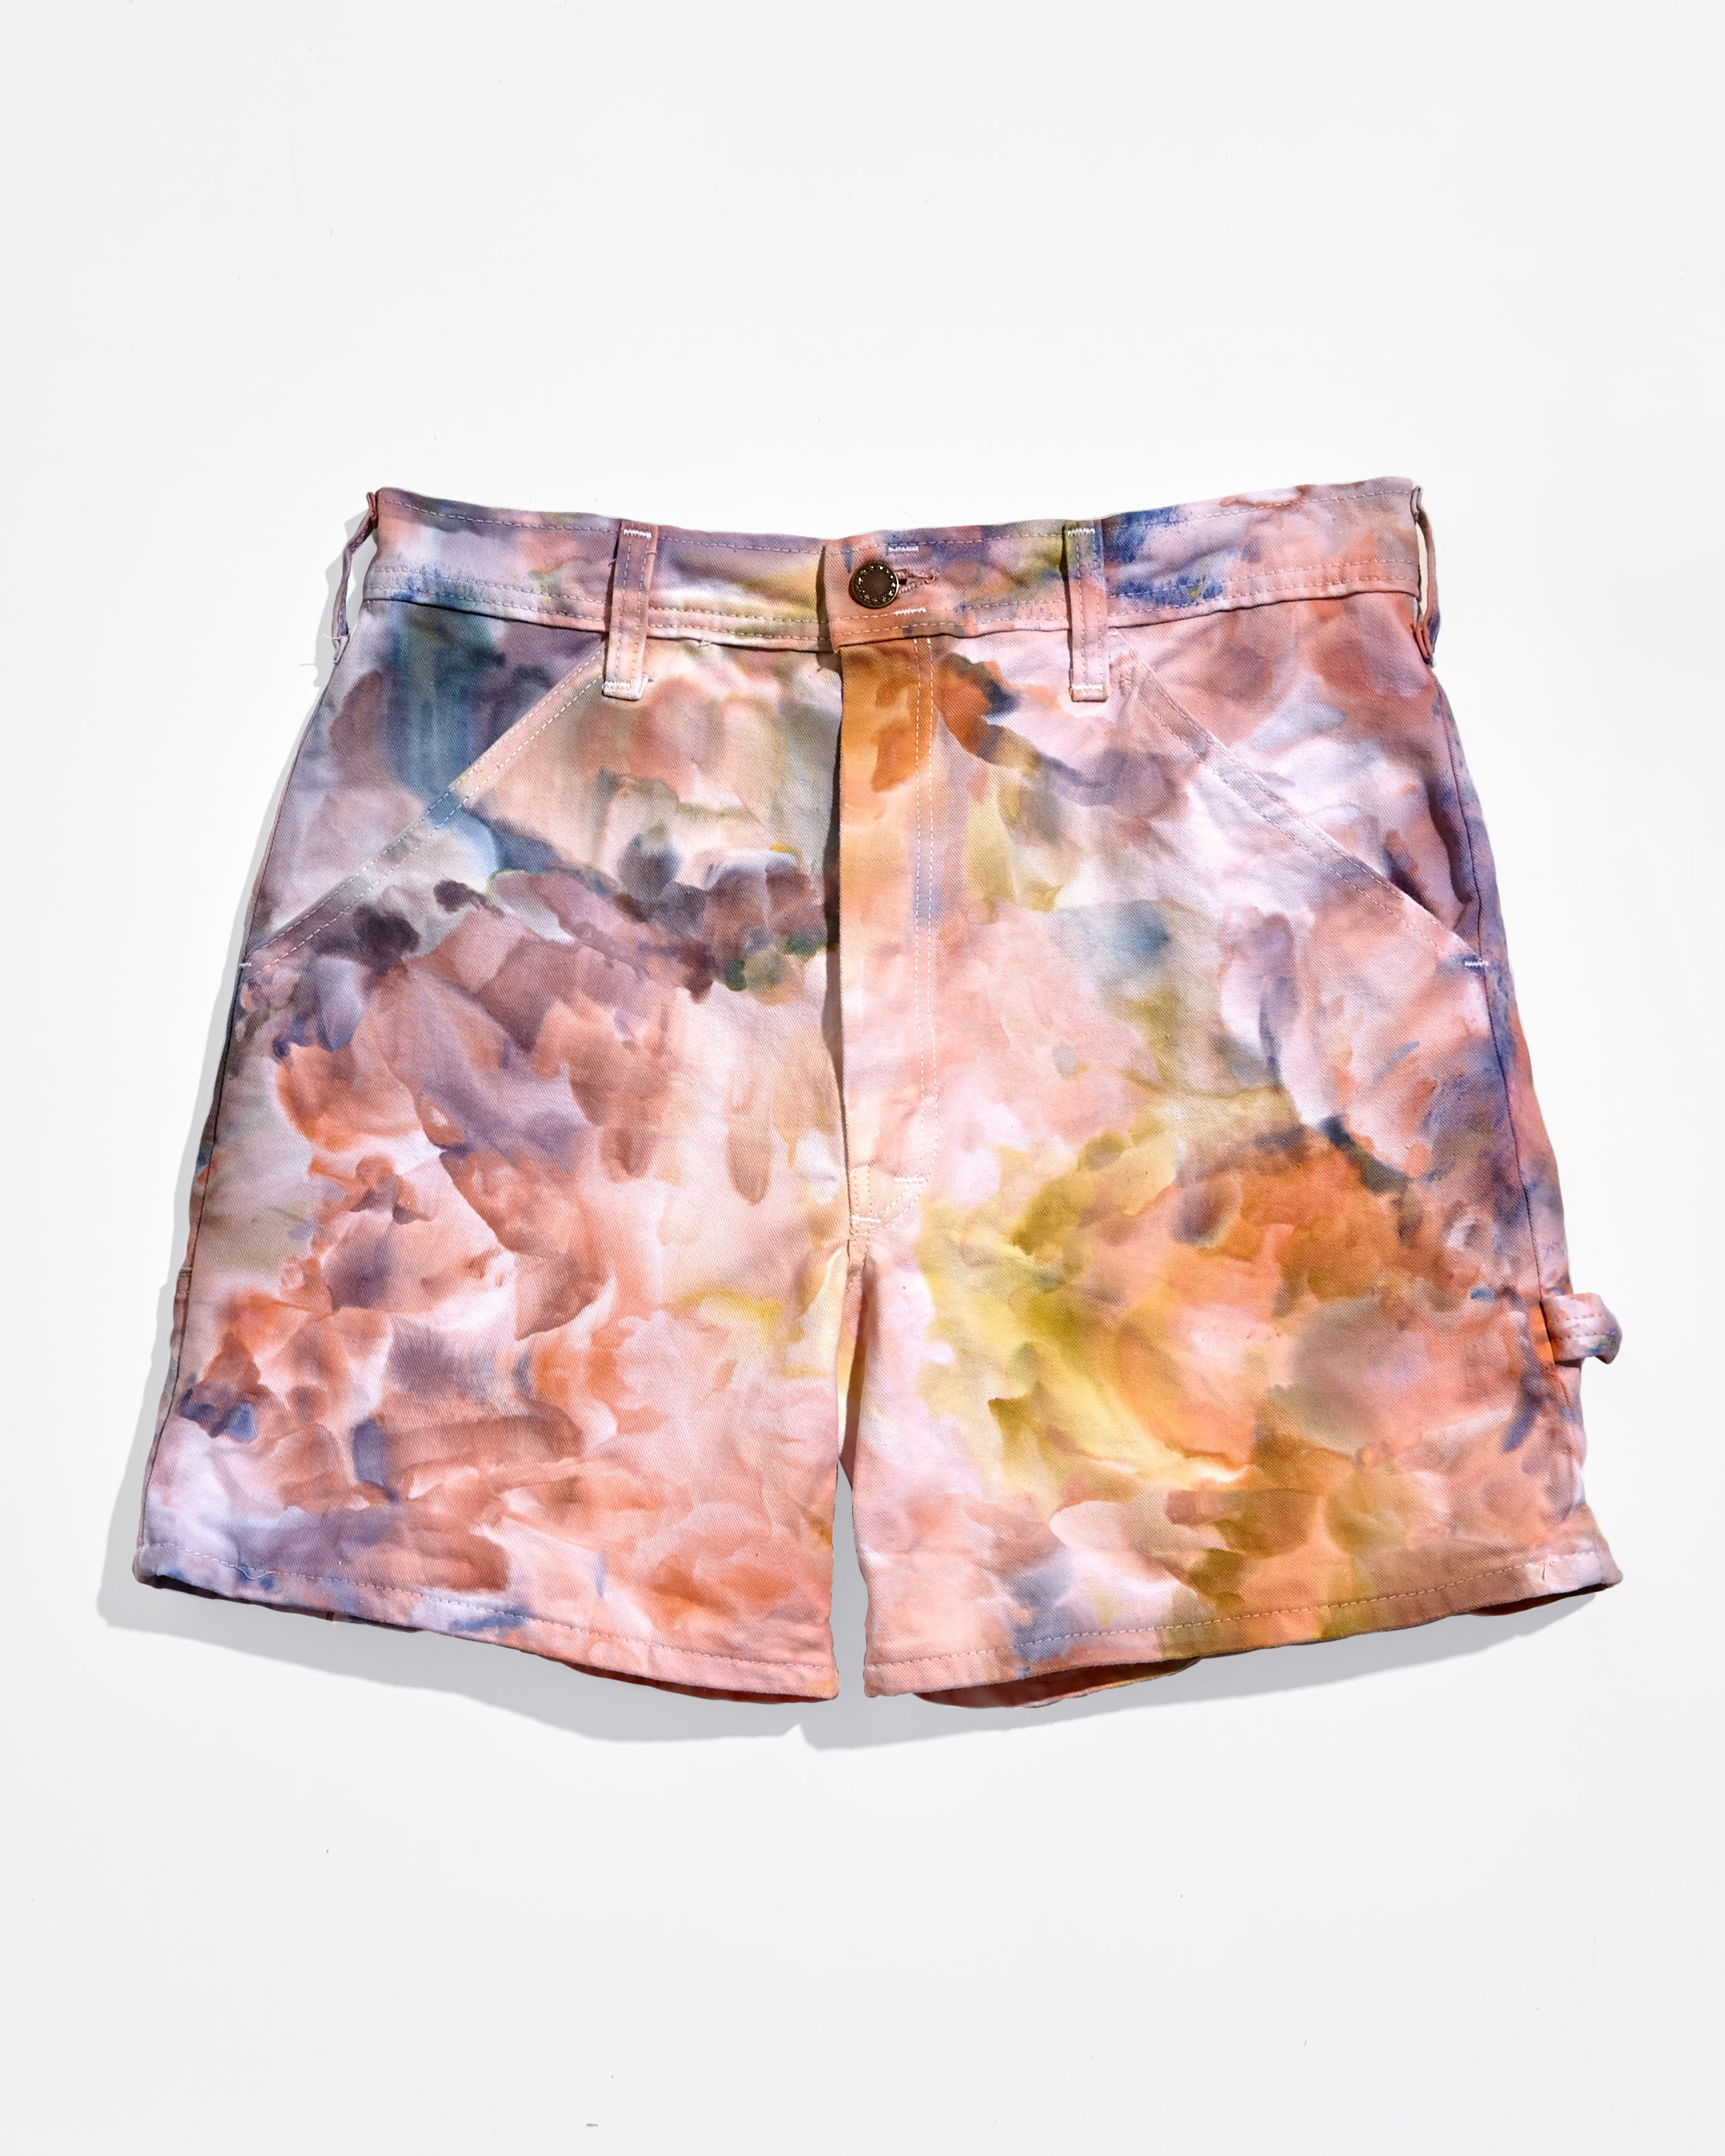 Painter's Shorts in Cotton Candy